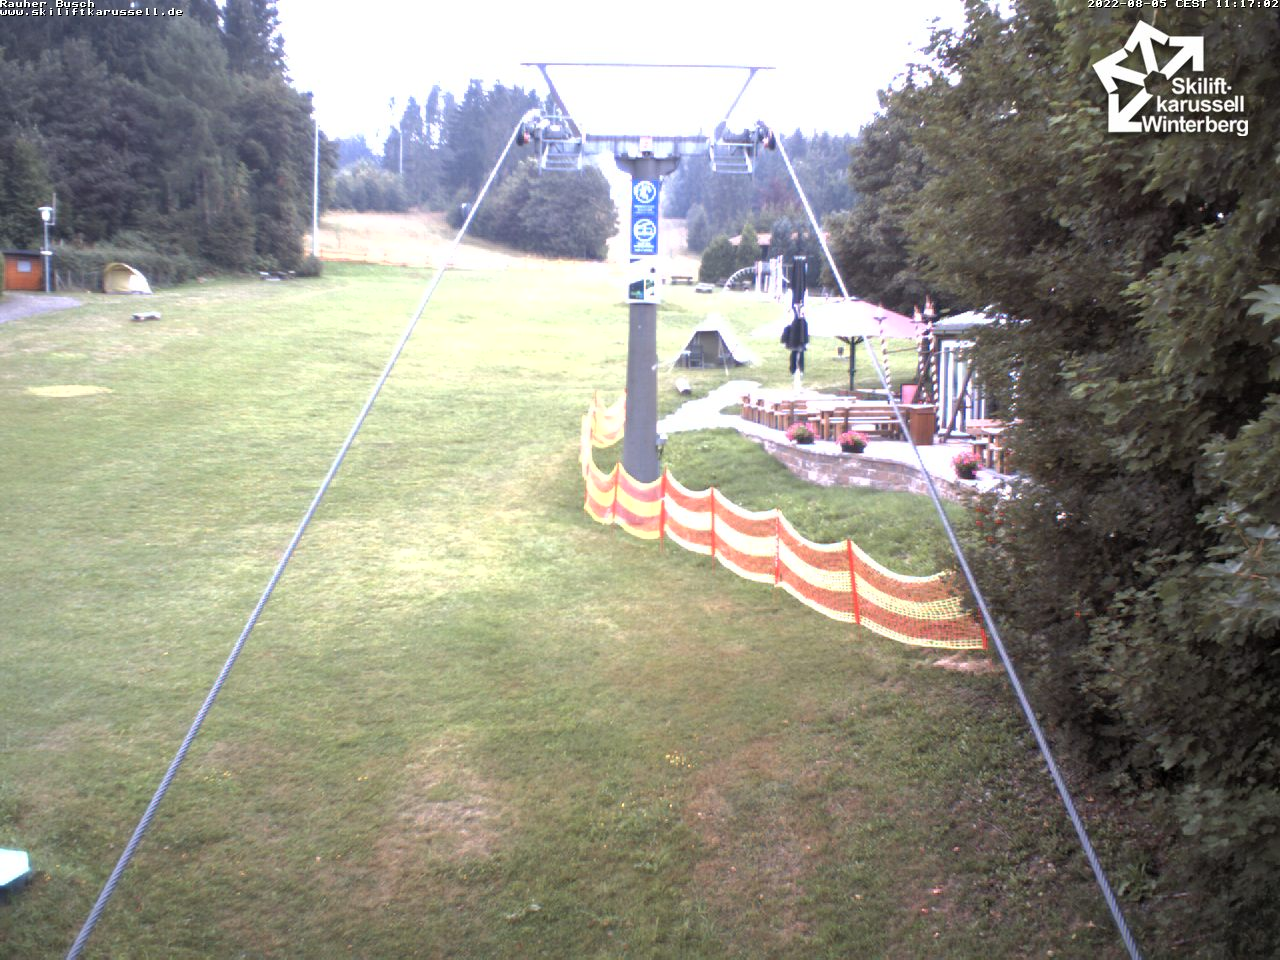 Skiliftkarussell Winterberg - Webcam 3